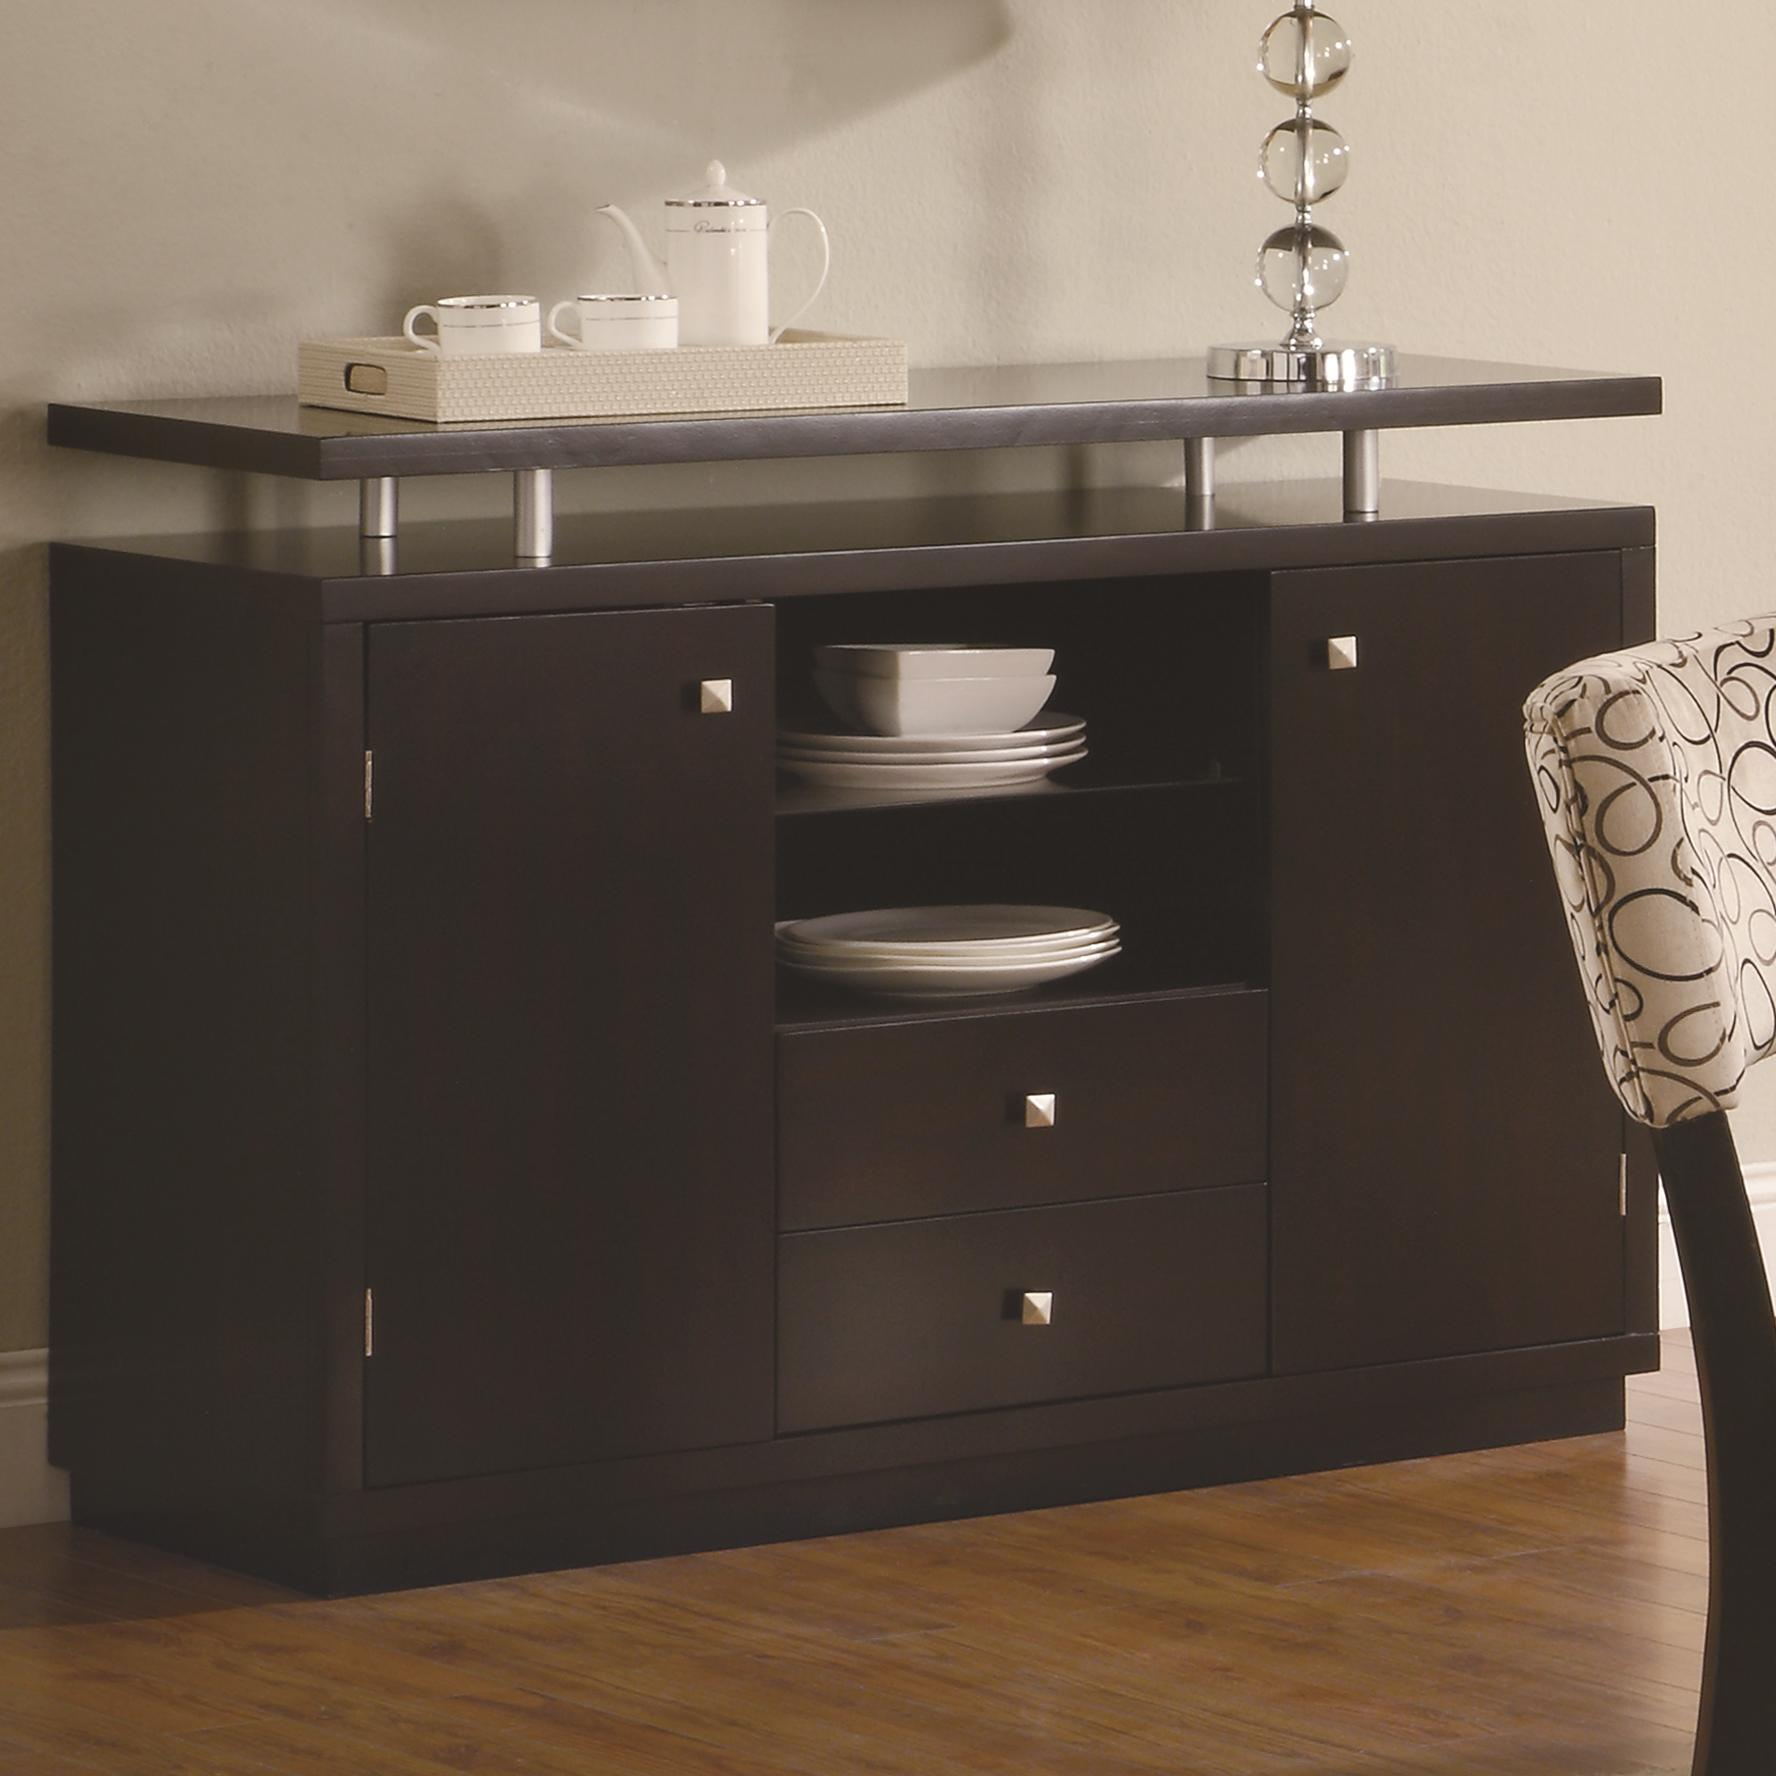 Libby Server by Coaster at Lapeer Furniture & Mattress Center